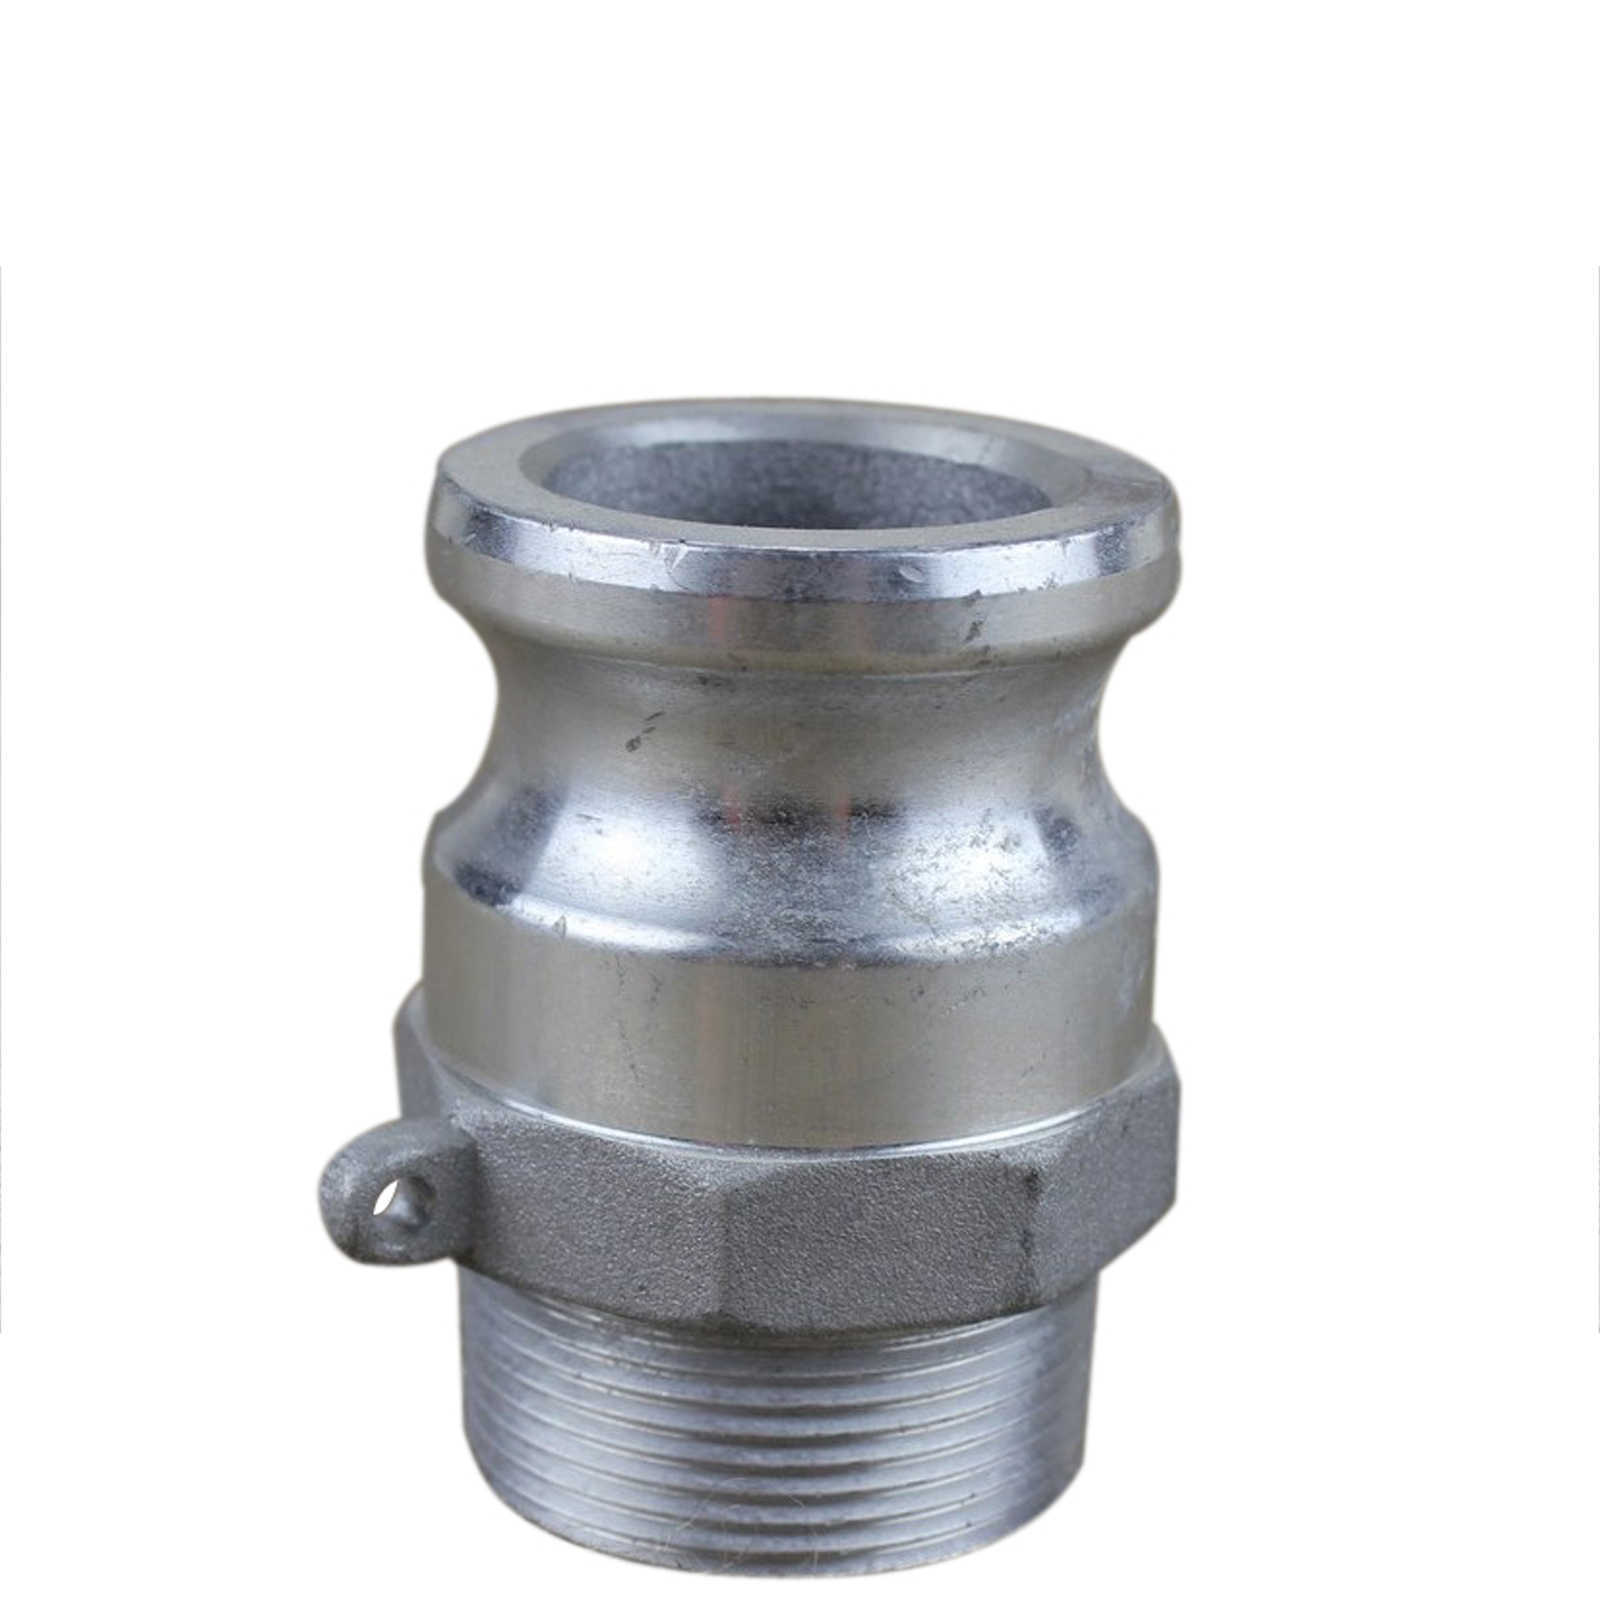 Camlock to male thread mm type f cam lock coupling